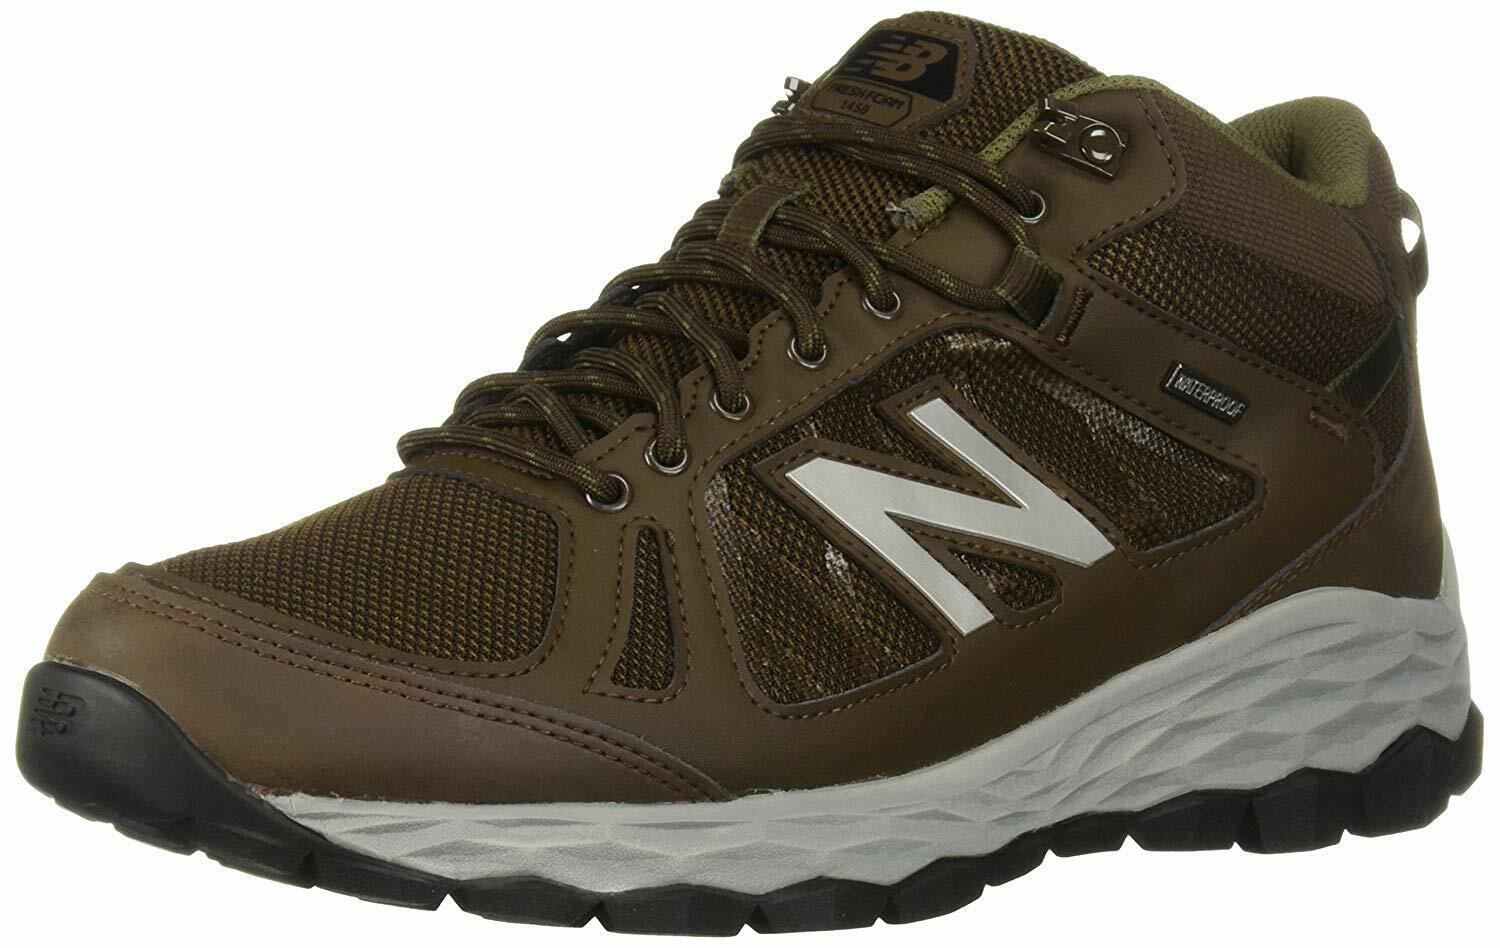 New Balance Mens 1450 Low Top Lace Up Walking shoes